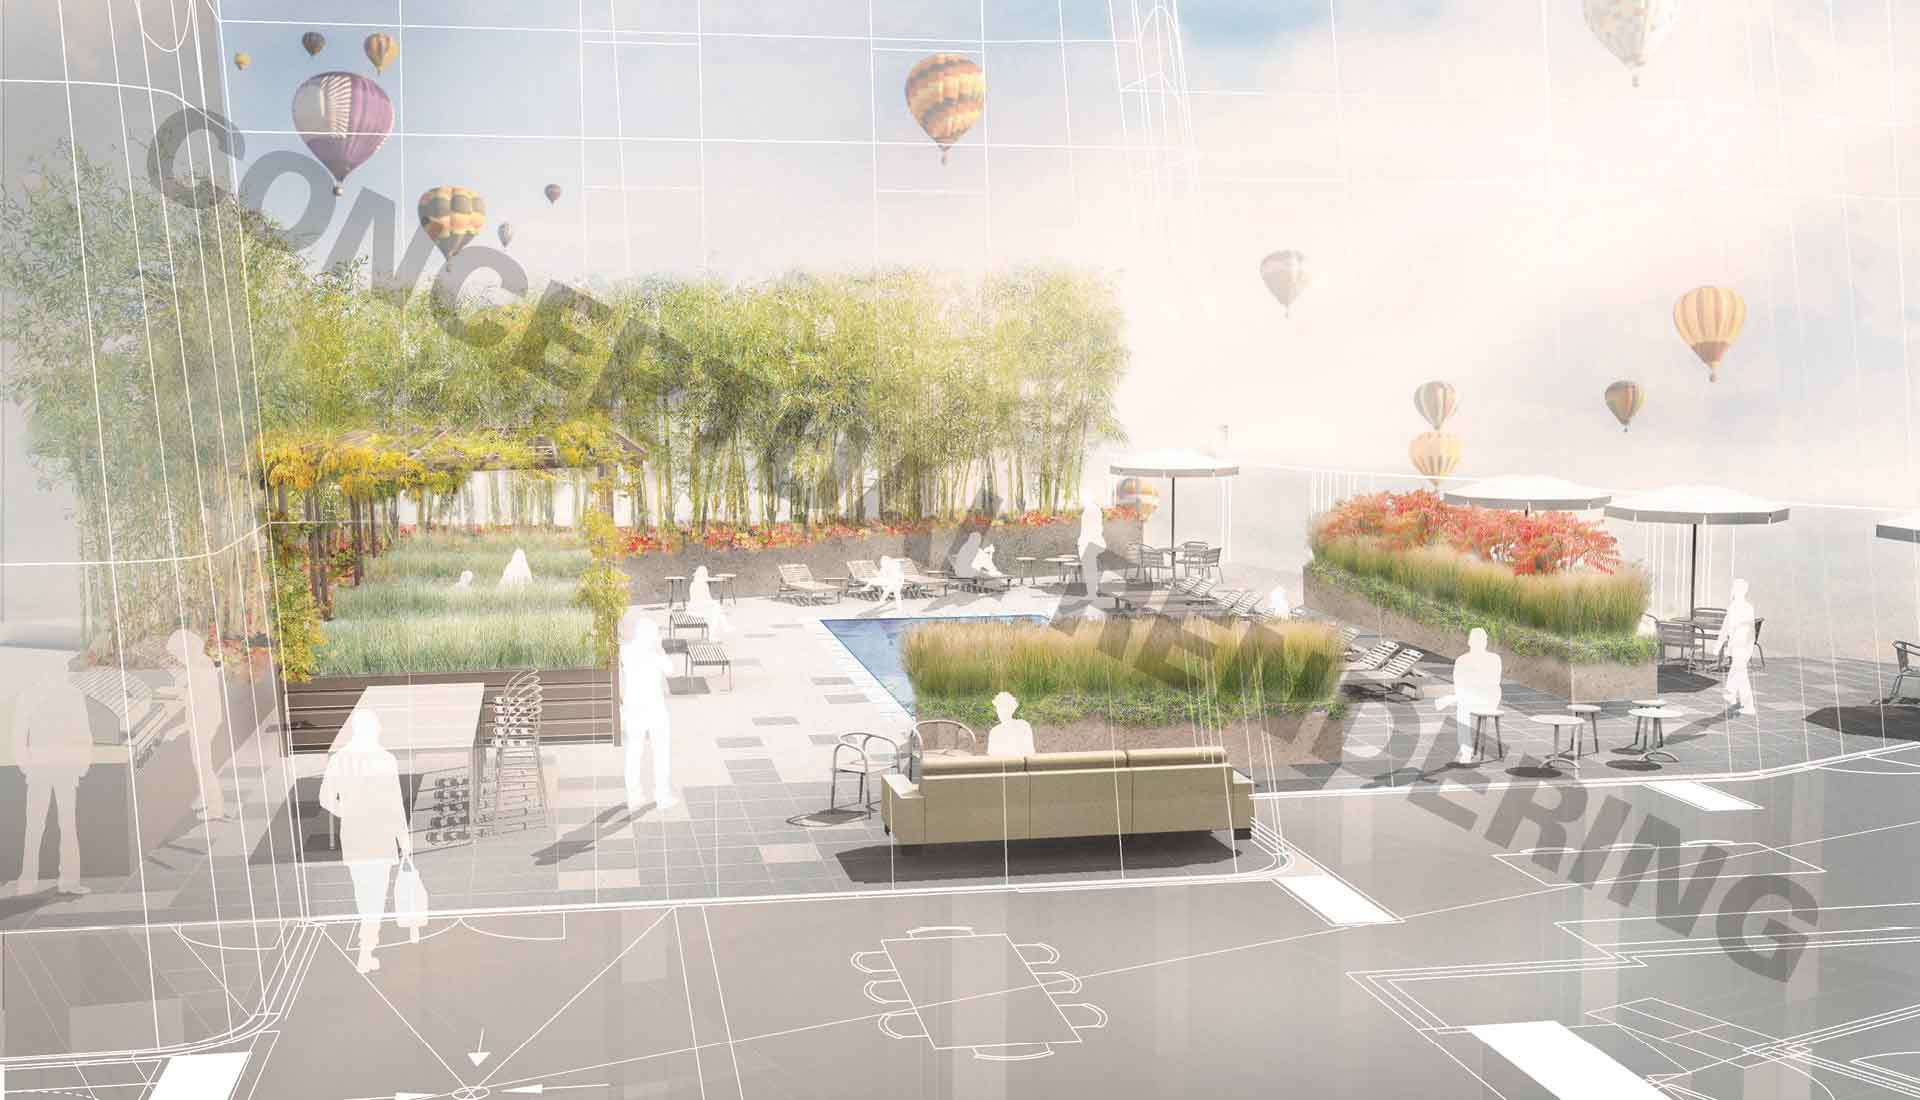 Arbolope Studio | Landscape Architects + Urban Designers | One Hundred (Studio Gang)